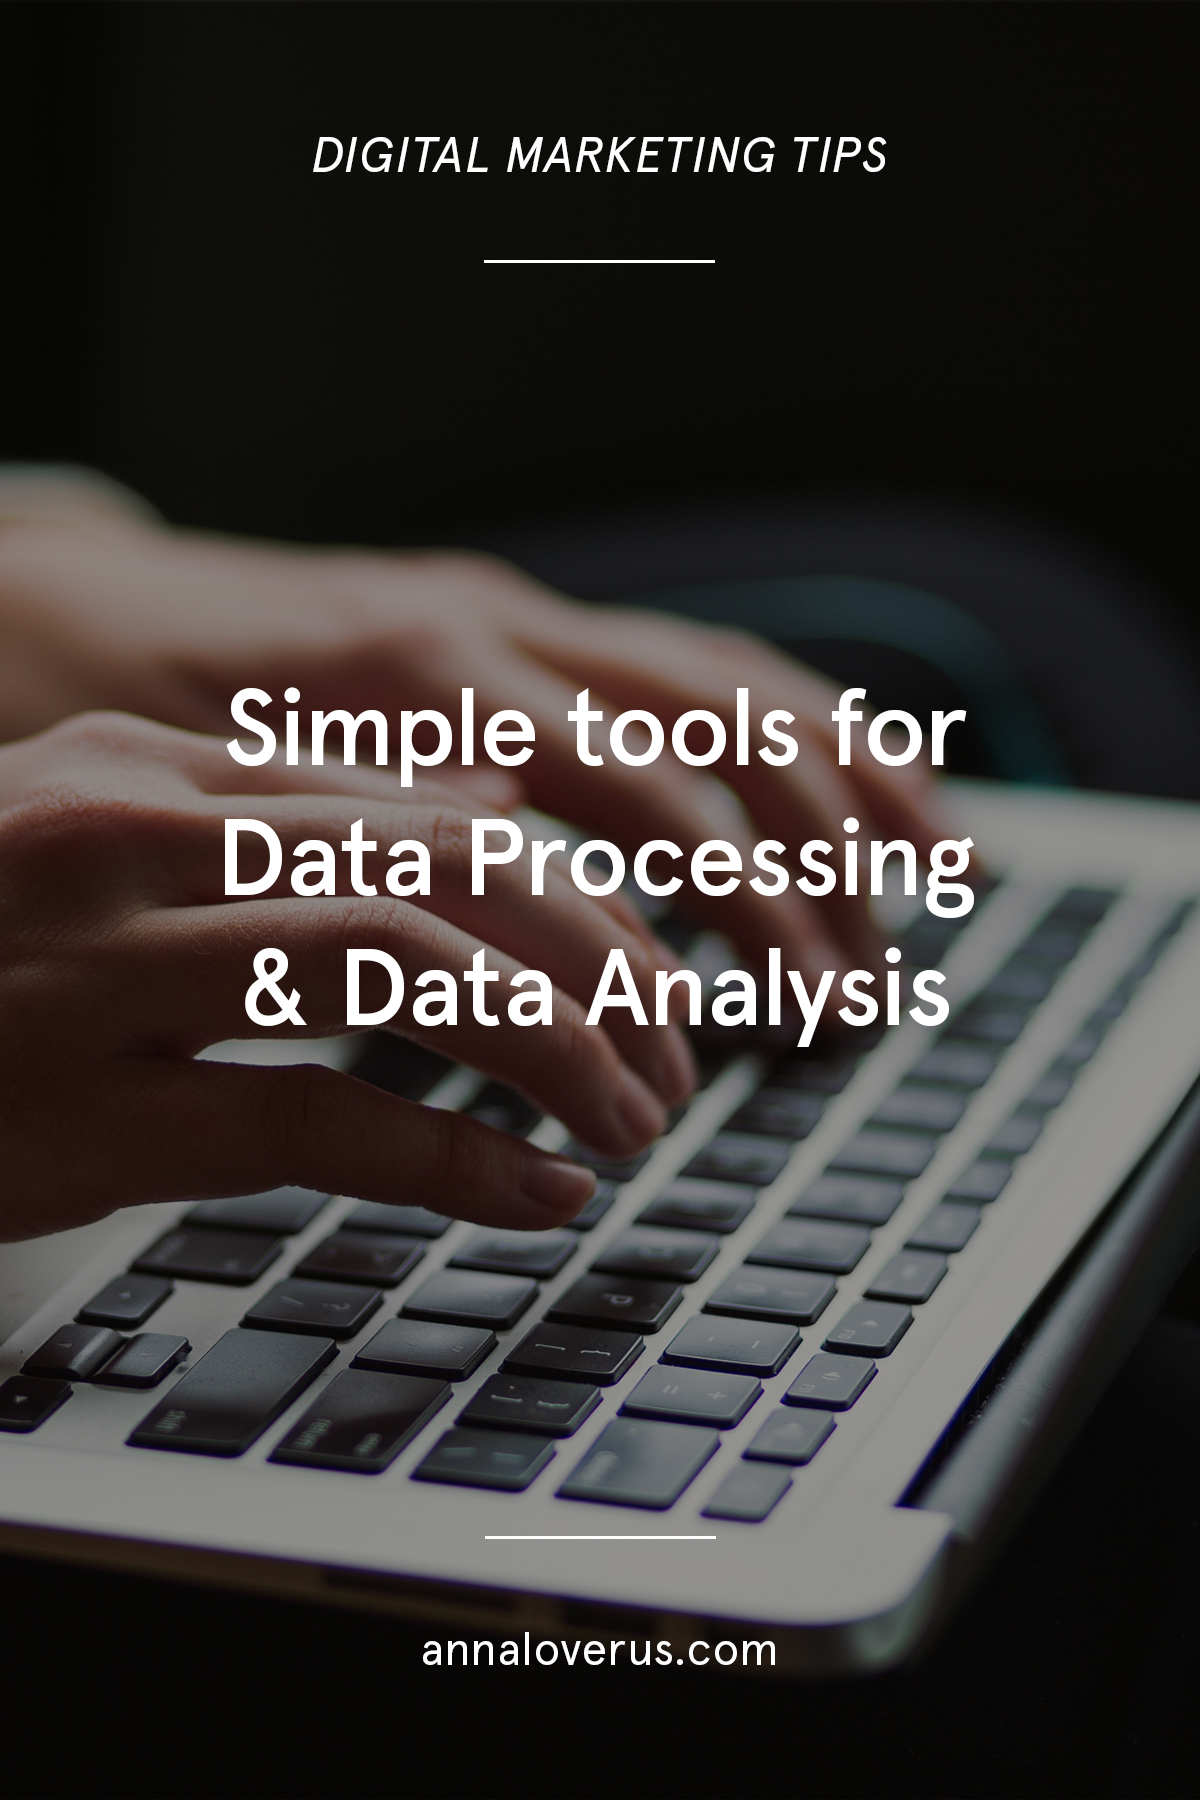 It's time to add some technology skills to your personal marketing toolkit. This post highlights the tools for data processing and data analysis that I use in my everyday job as a data-driven digital marketer.